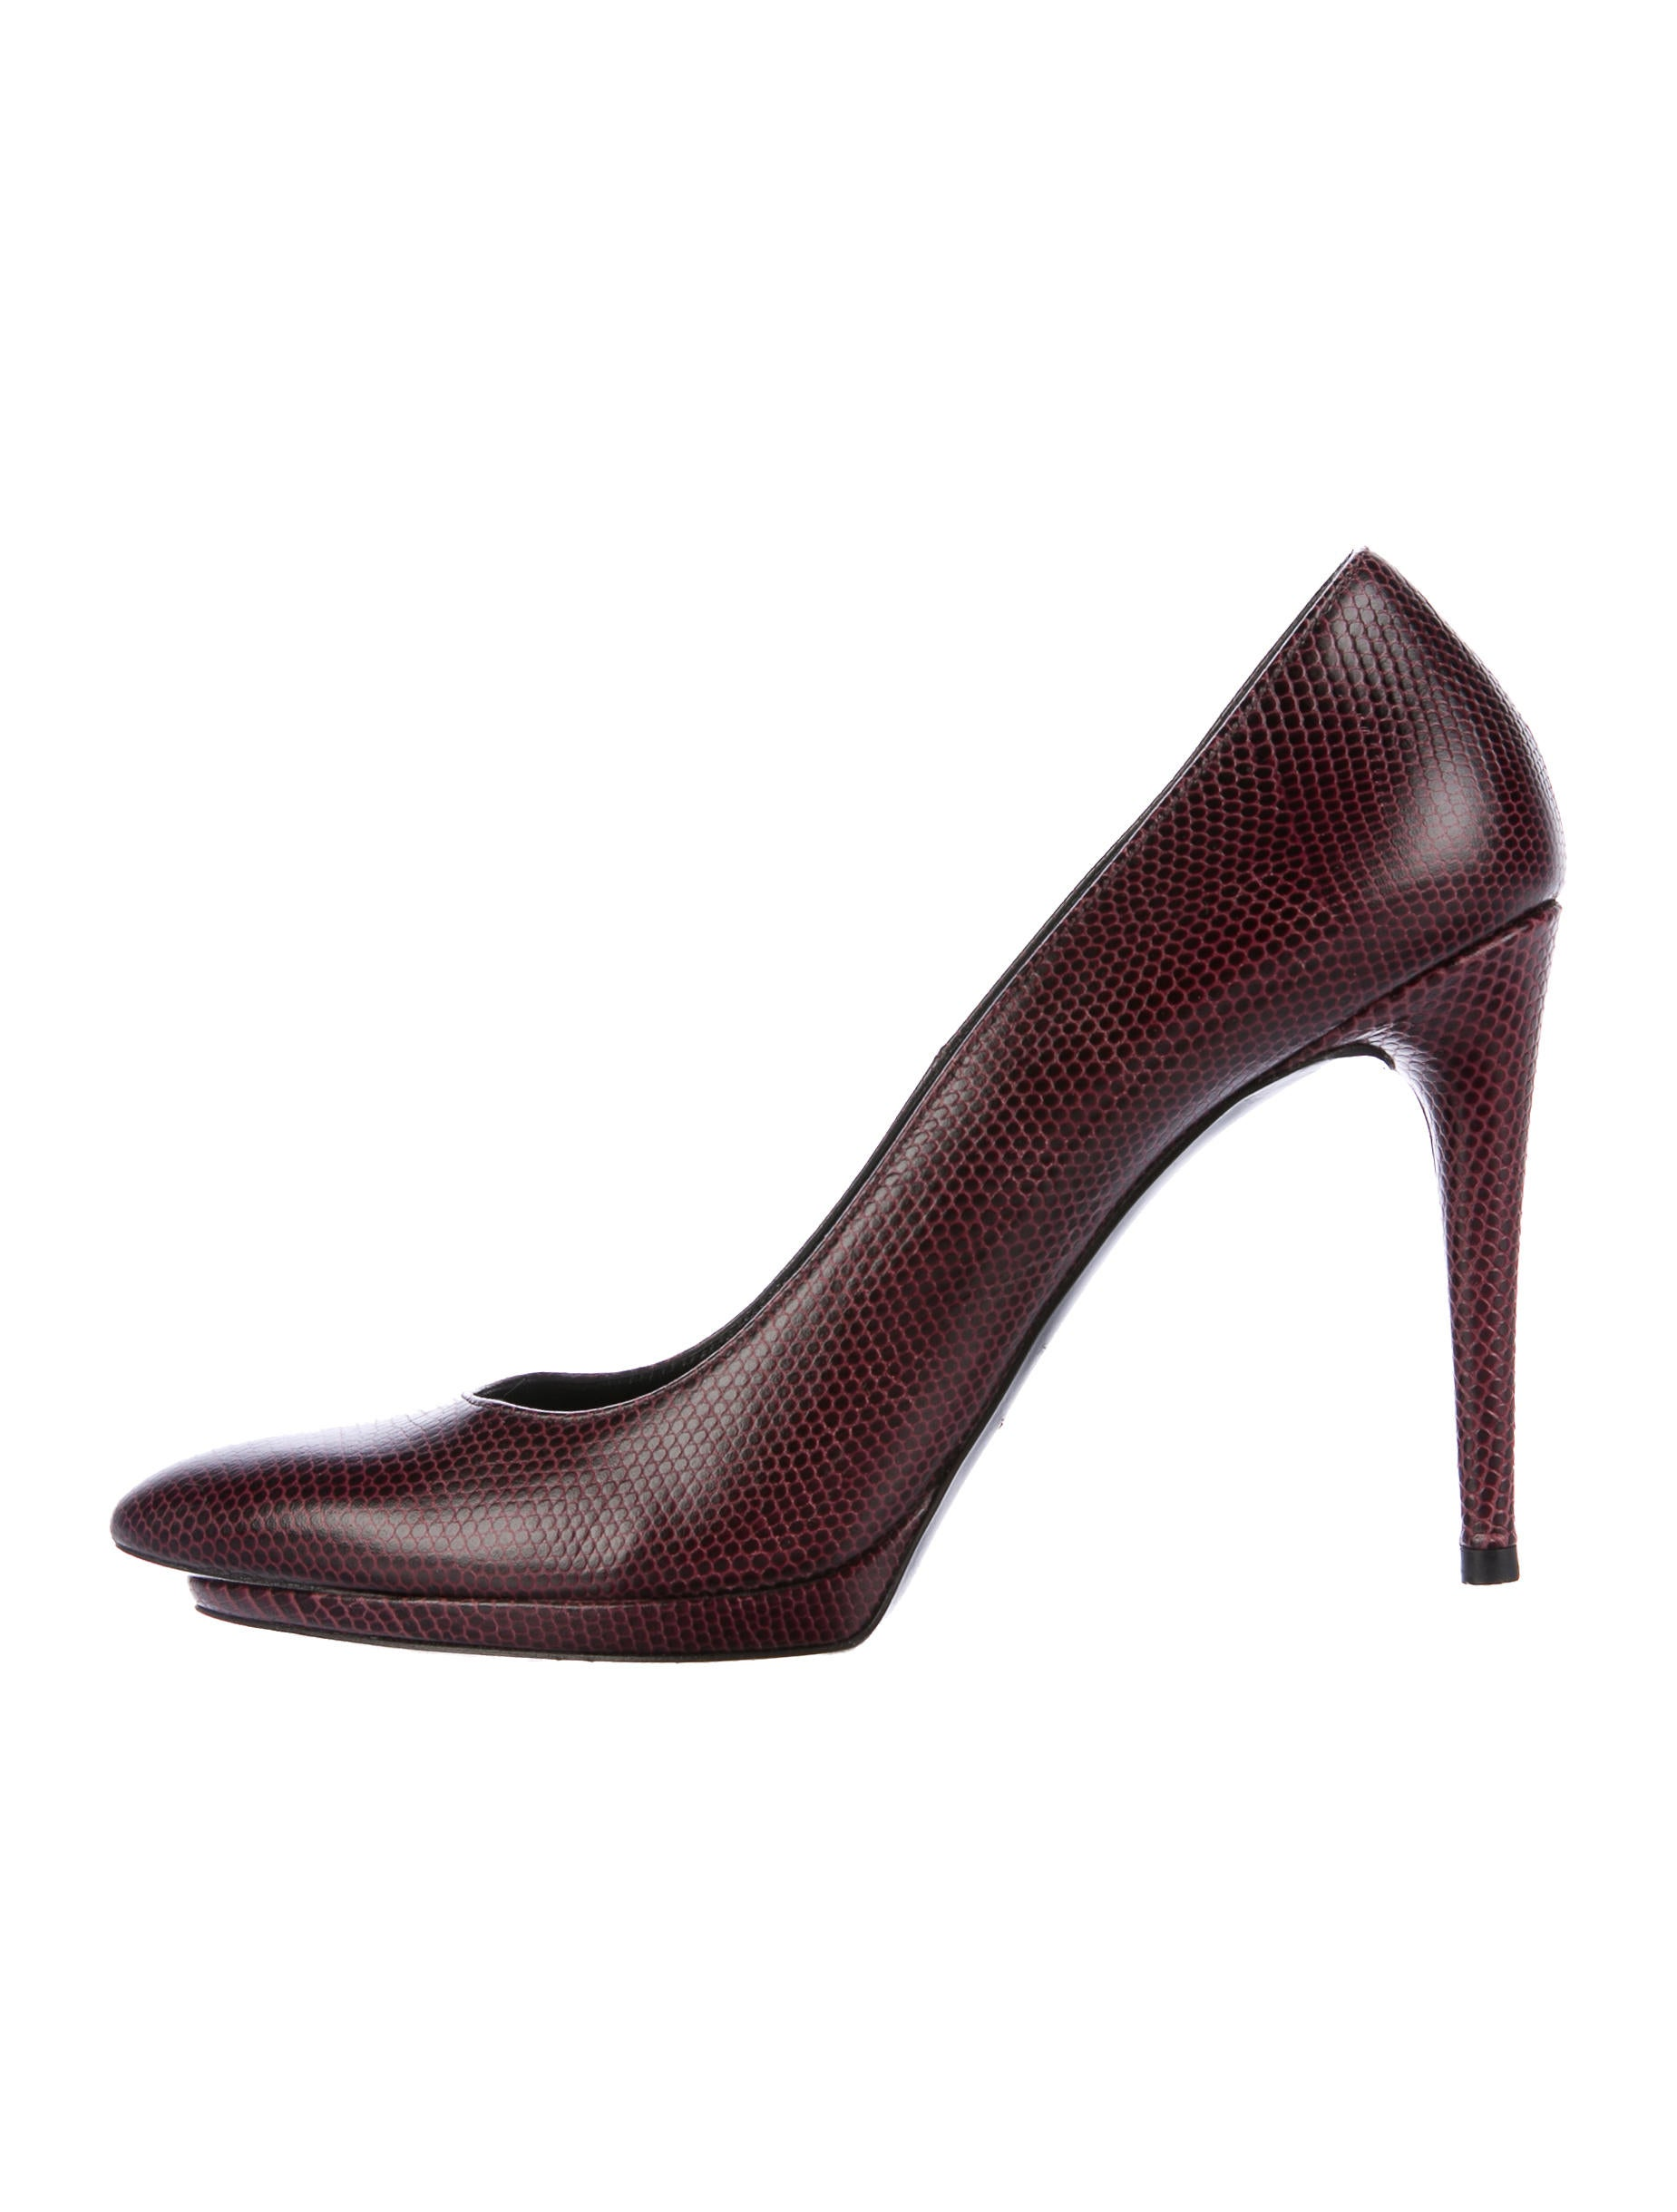 Balenciaga Embossed Leather Pointed-Toe Pumps looking for online sneakernews for sale sale online sale purchase outlet really pjm430